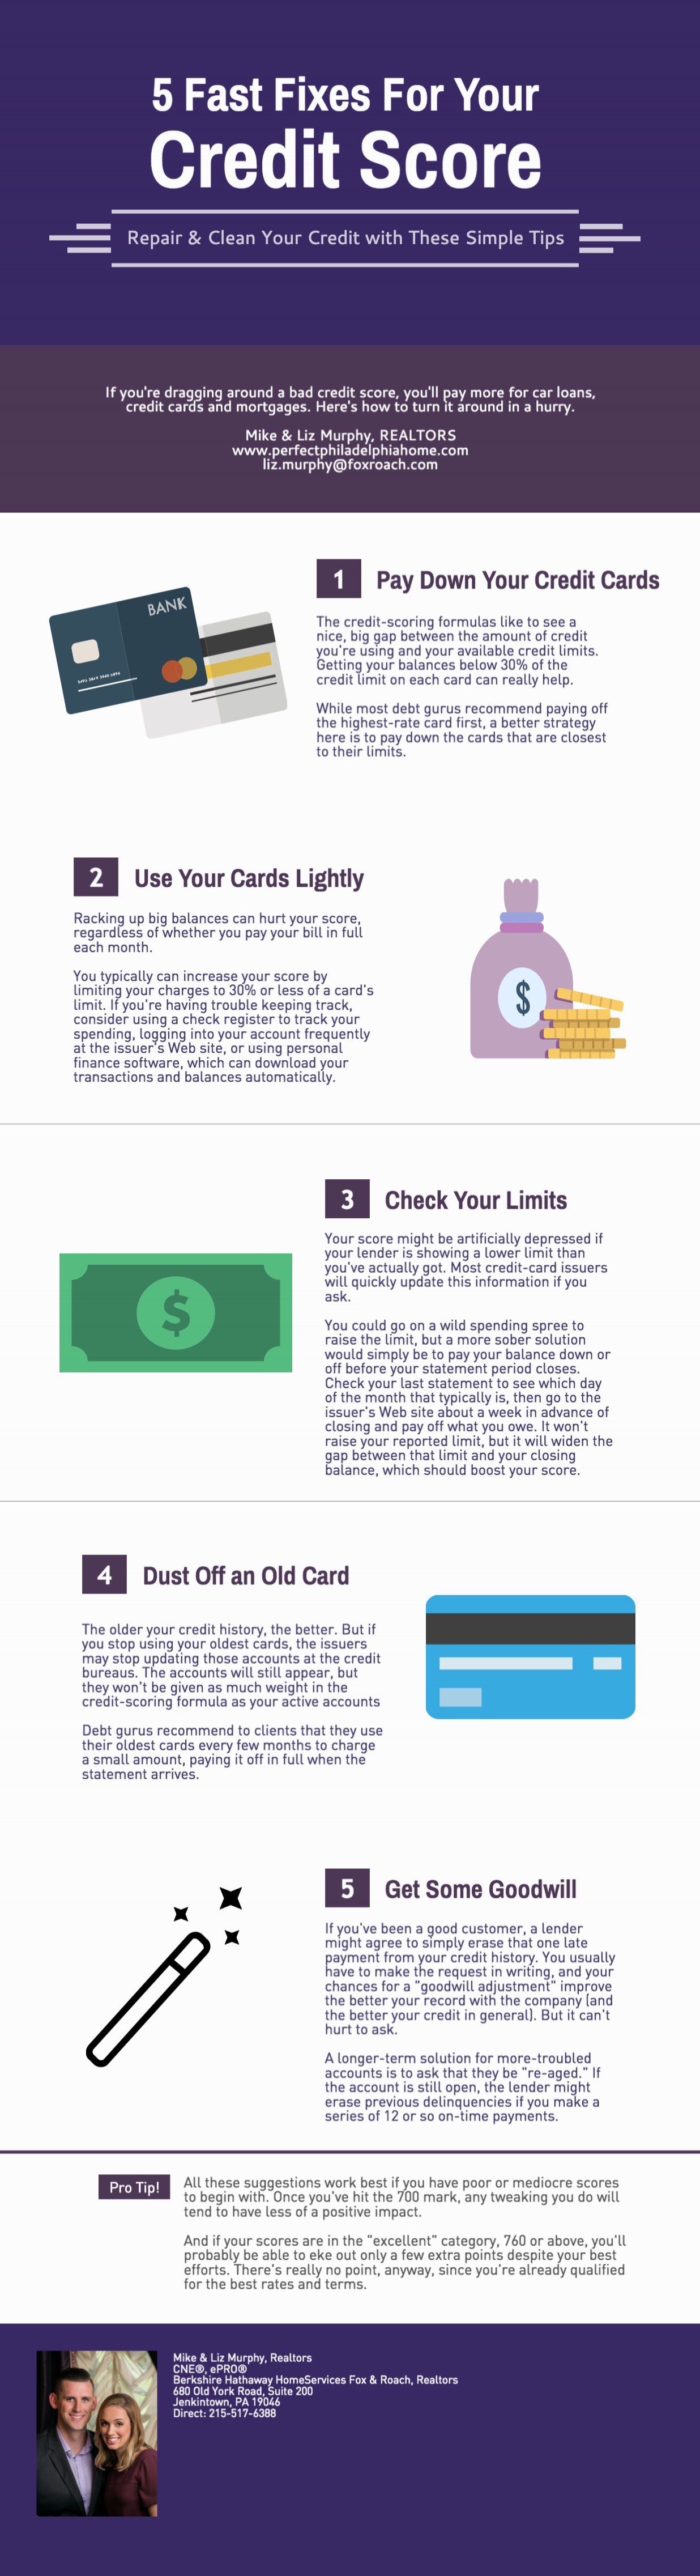 5 Fast Fixes For Your Credit Score